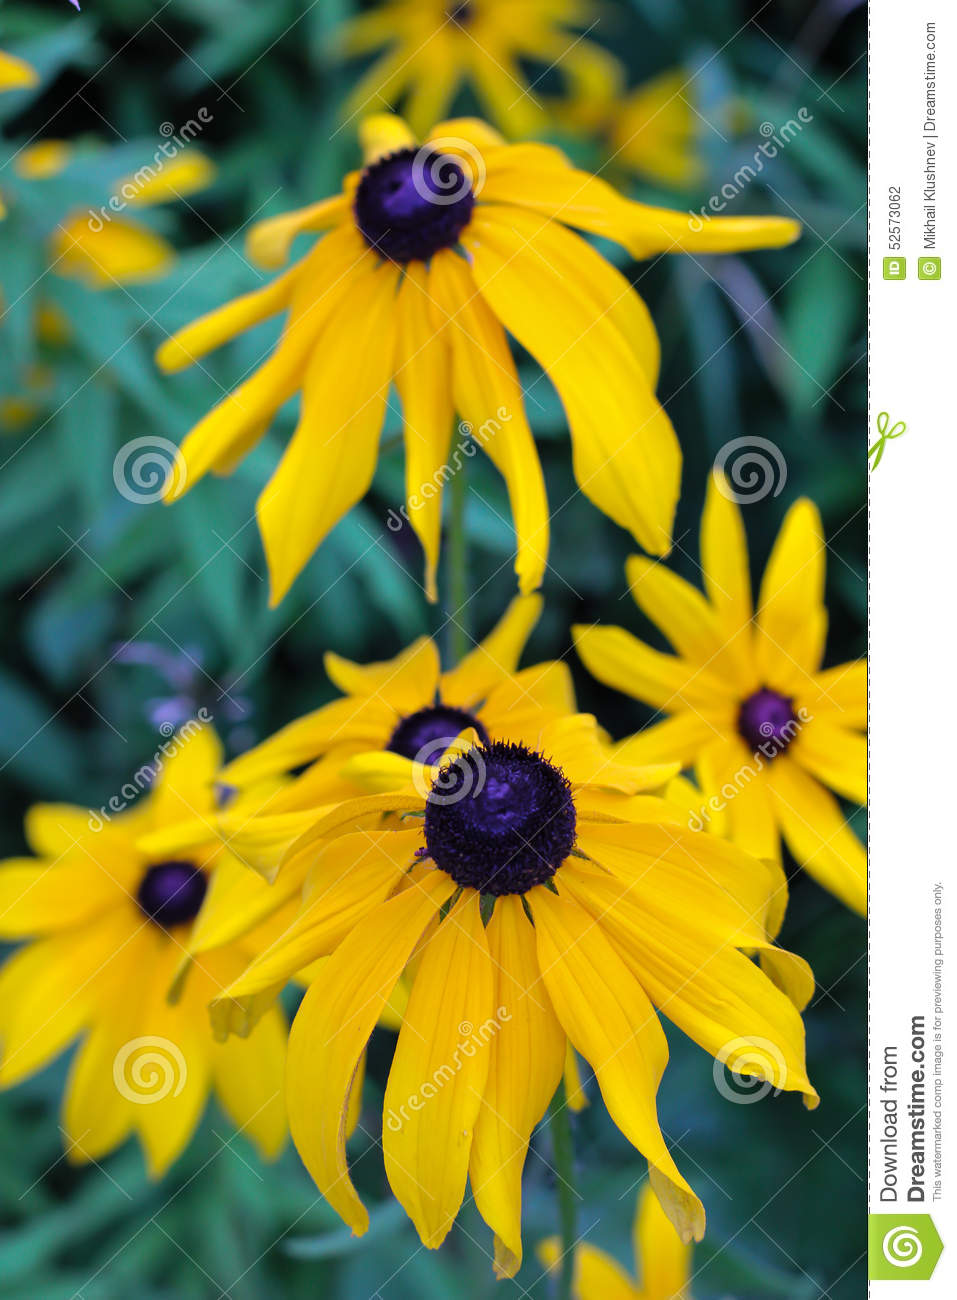 Yellow Flowers With A Black Heart Stock Photo Image Of Plant